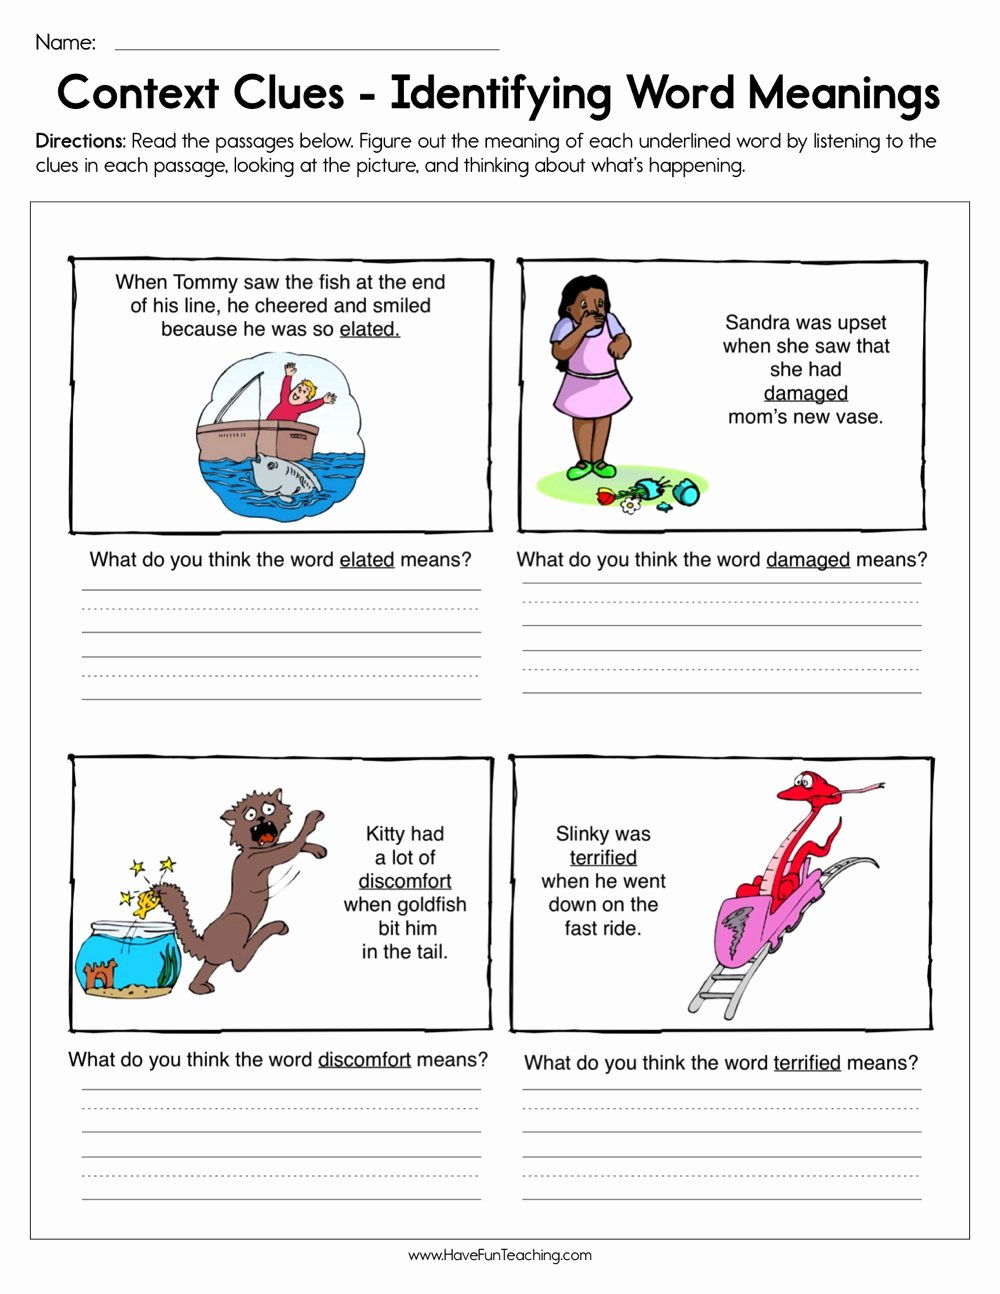 Context Clues Worksheets 1st Grade New Context Clues Identifying Word Meaning Worksheet